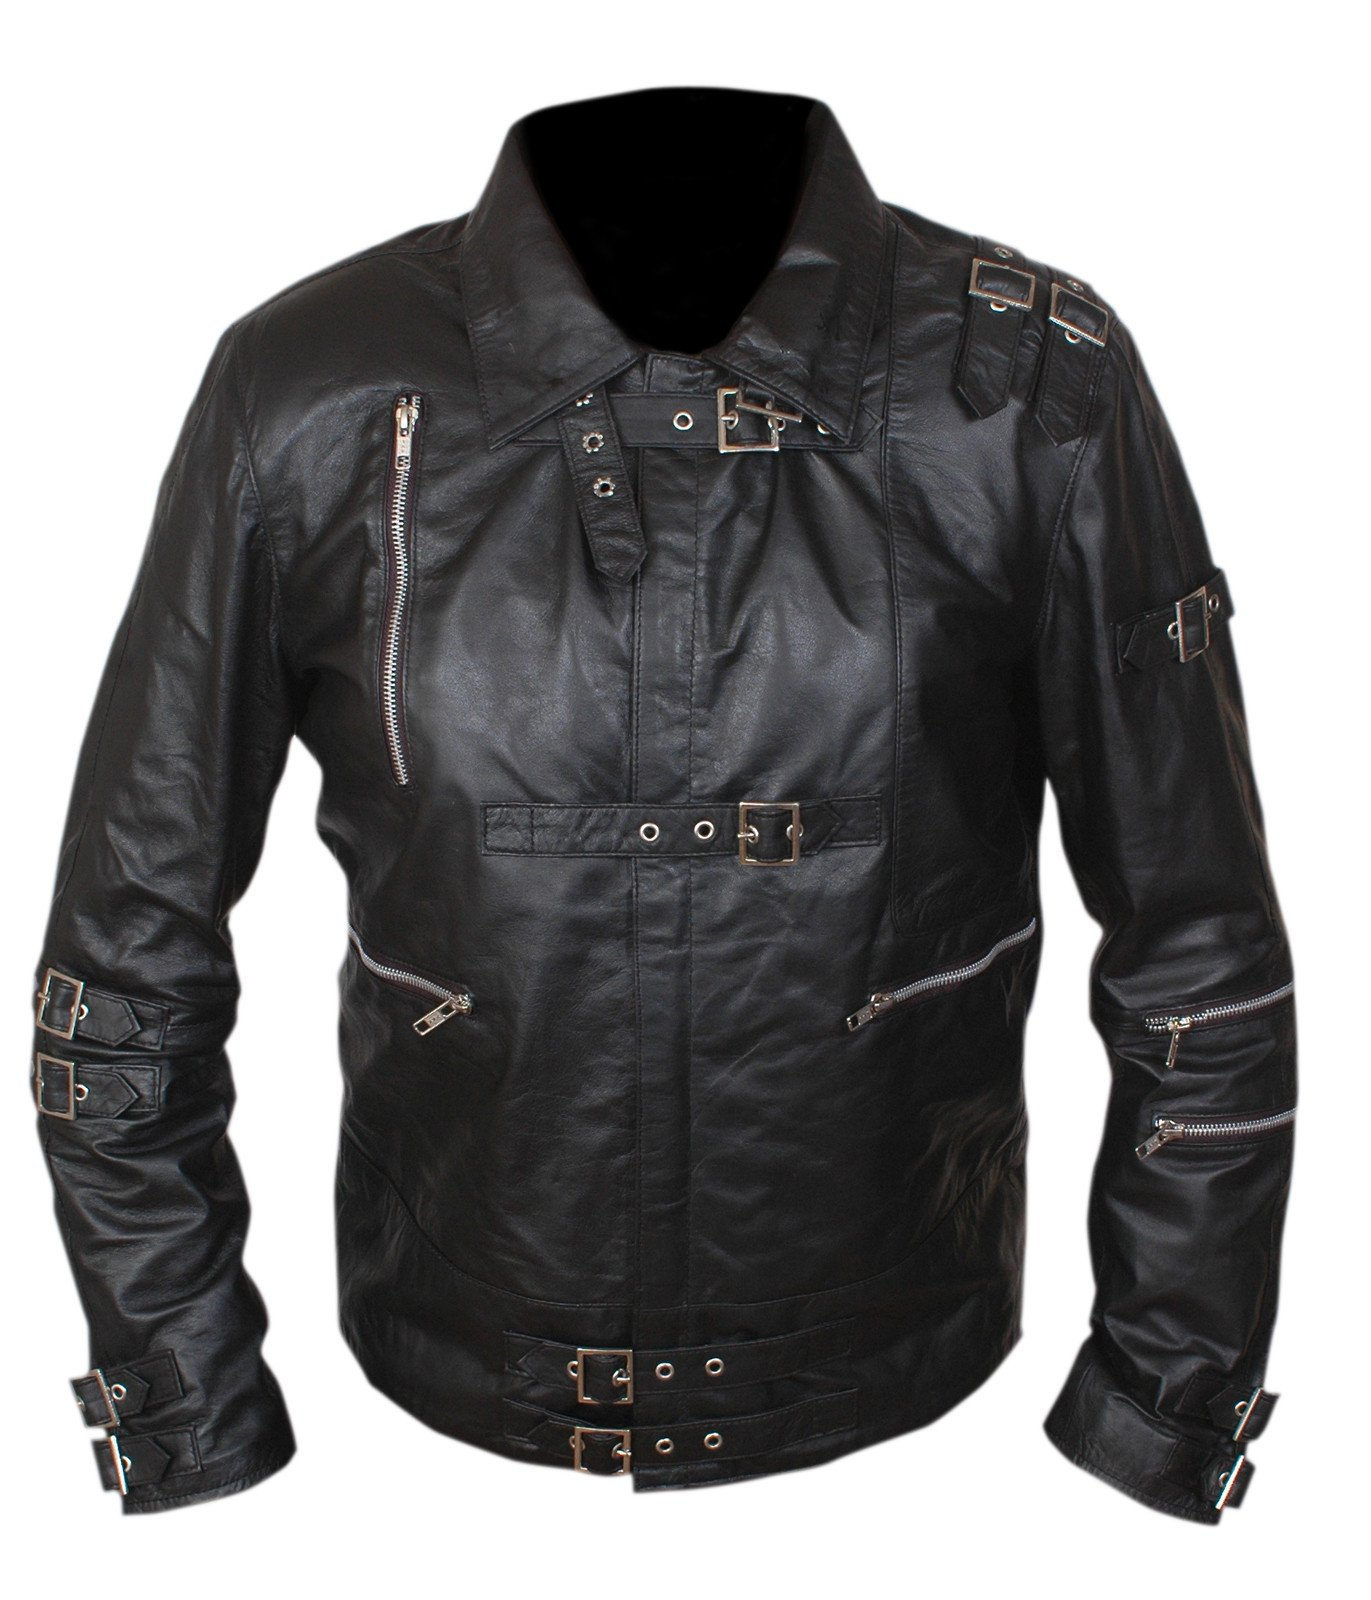 F&H Boy's Michael Jackson Bad Jacket S Black by Flesh & Hide